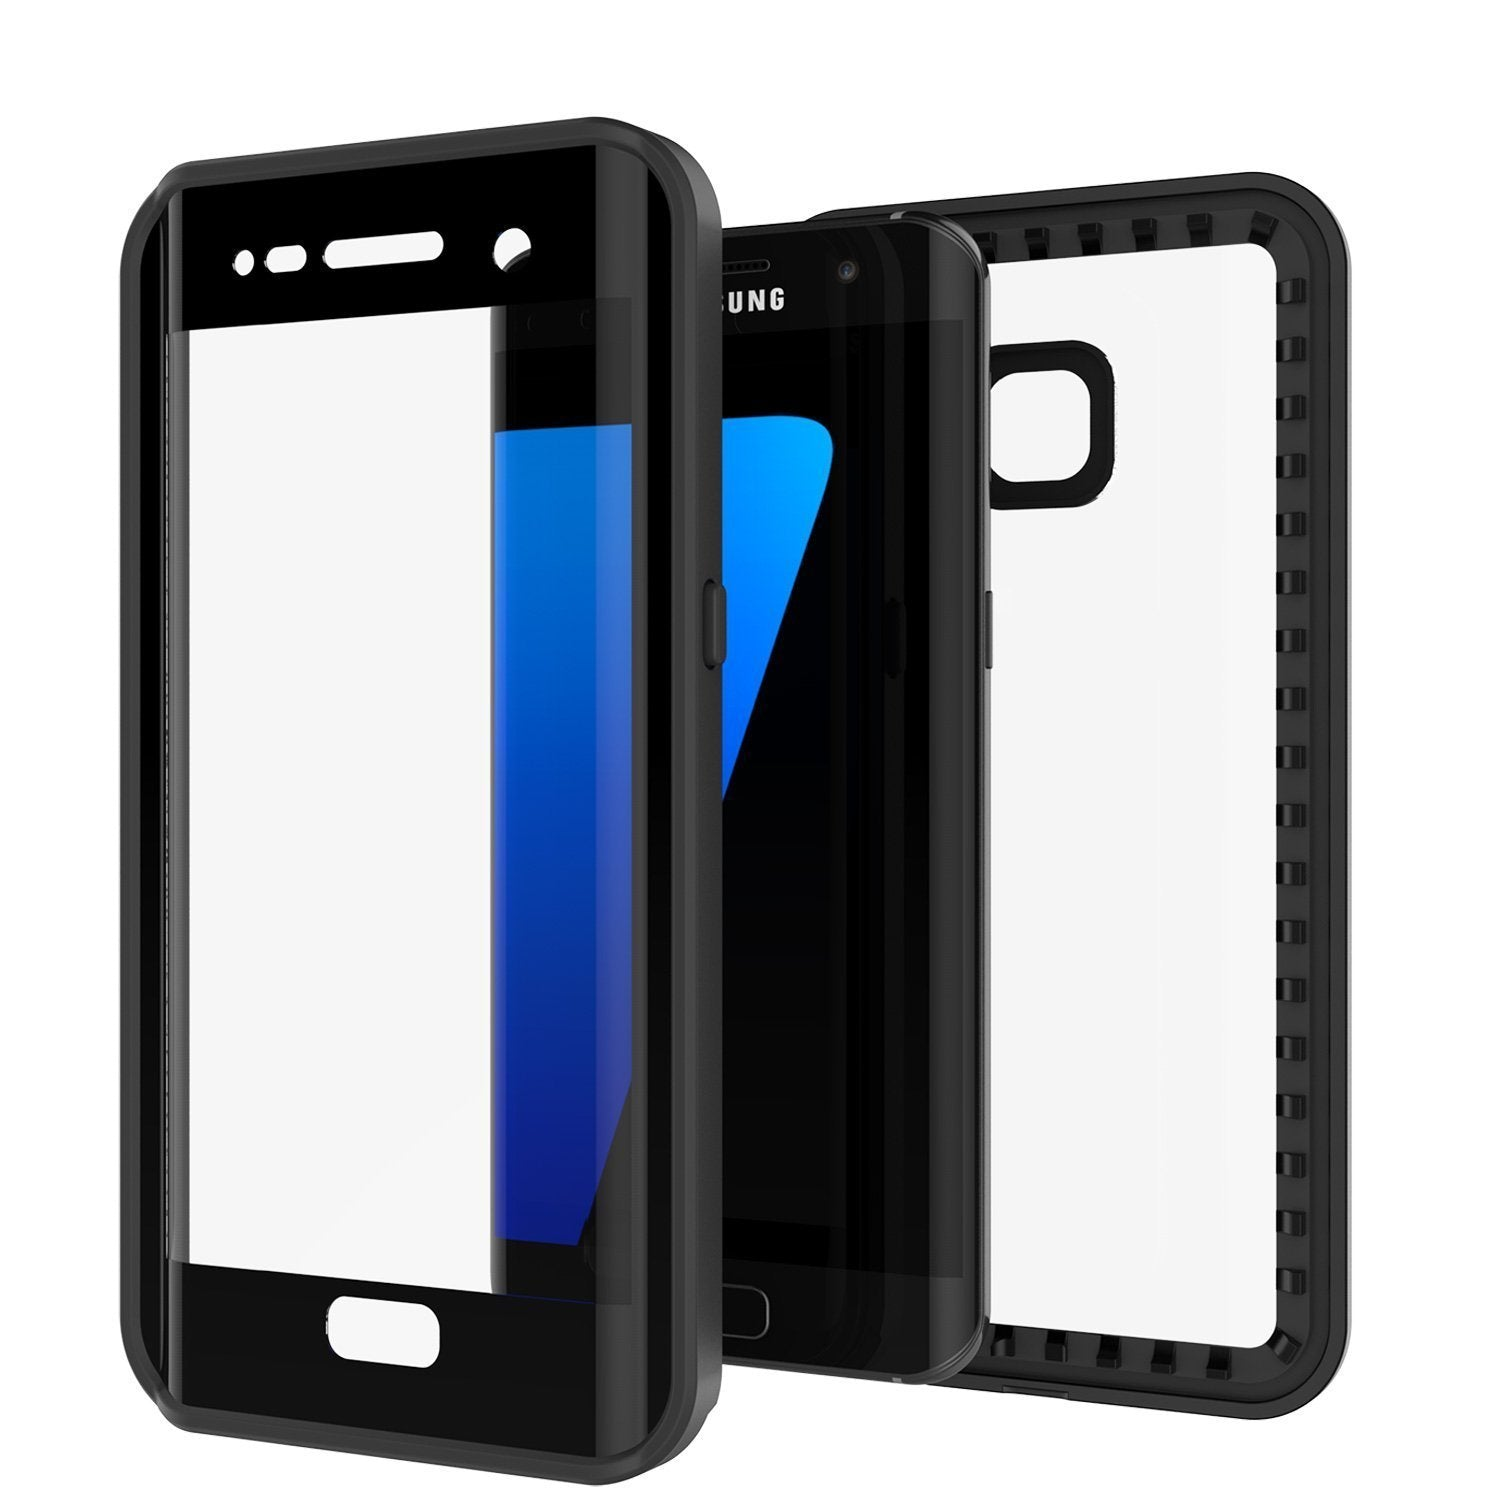 cheap for discount 16297 8df86 Galaxy S7 Edge Waterproof Case, Punkcase [Extreme Series] [Slim Fit] Armor  Cover W/ Built In Screen Protector [BLACK]